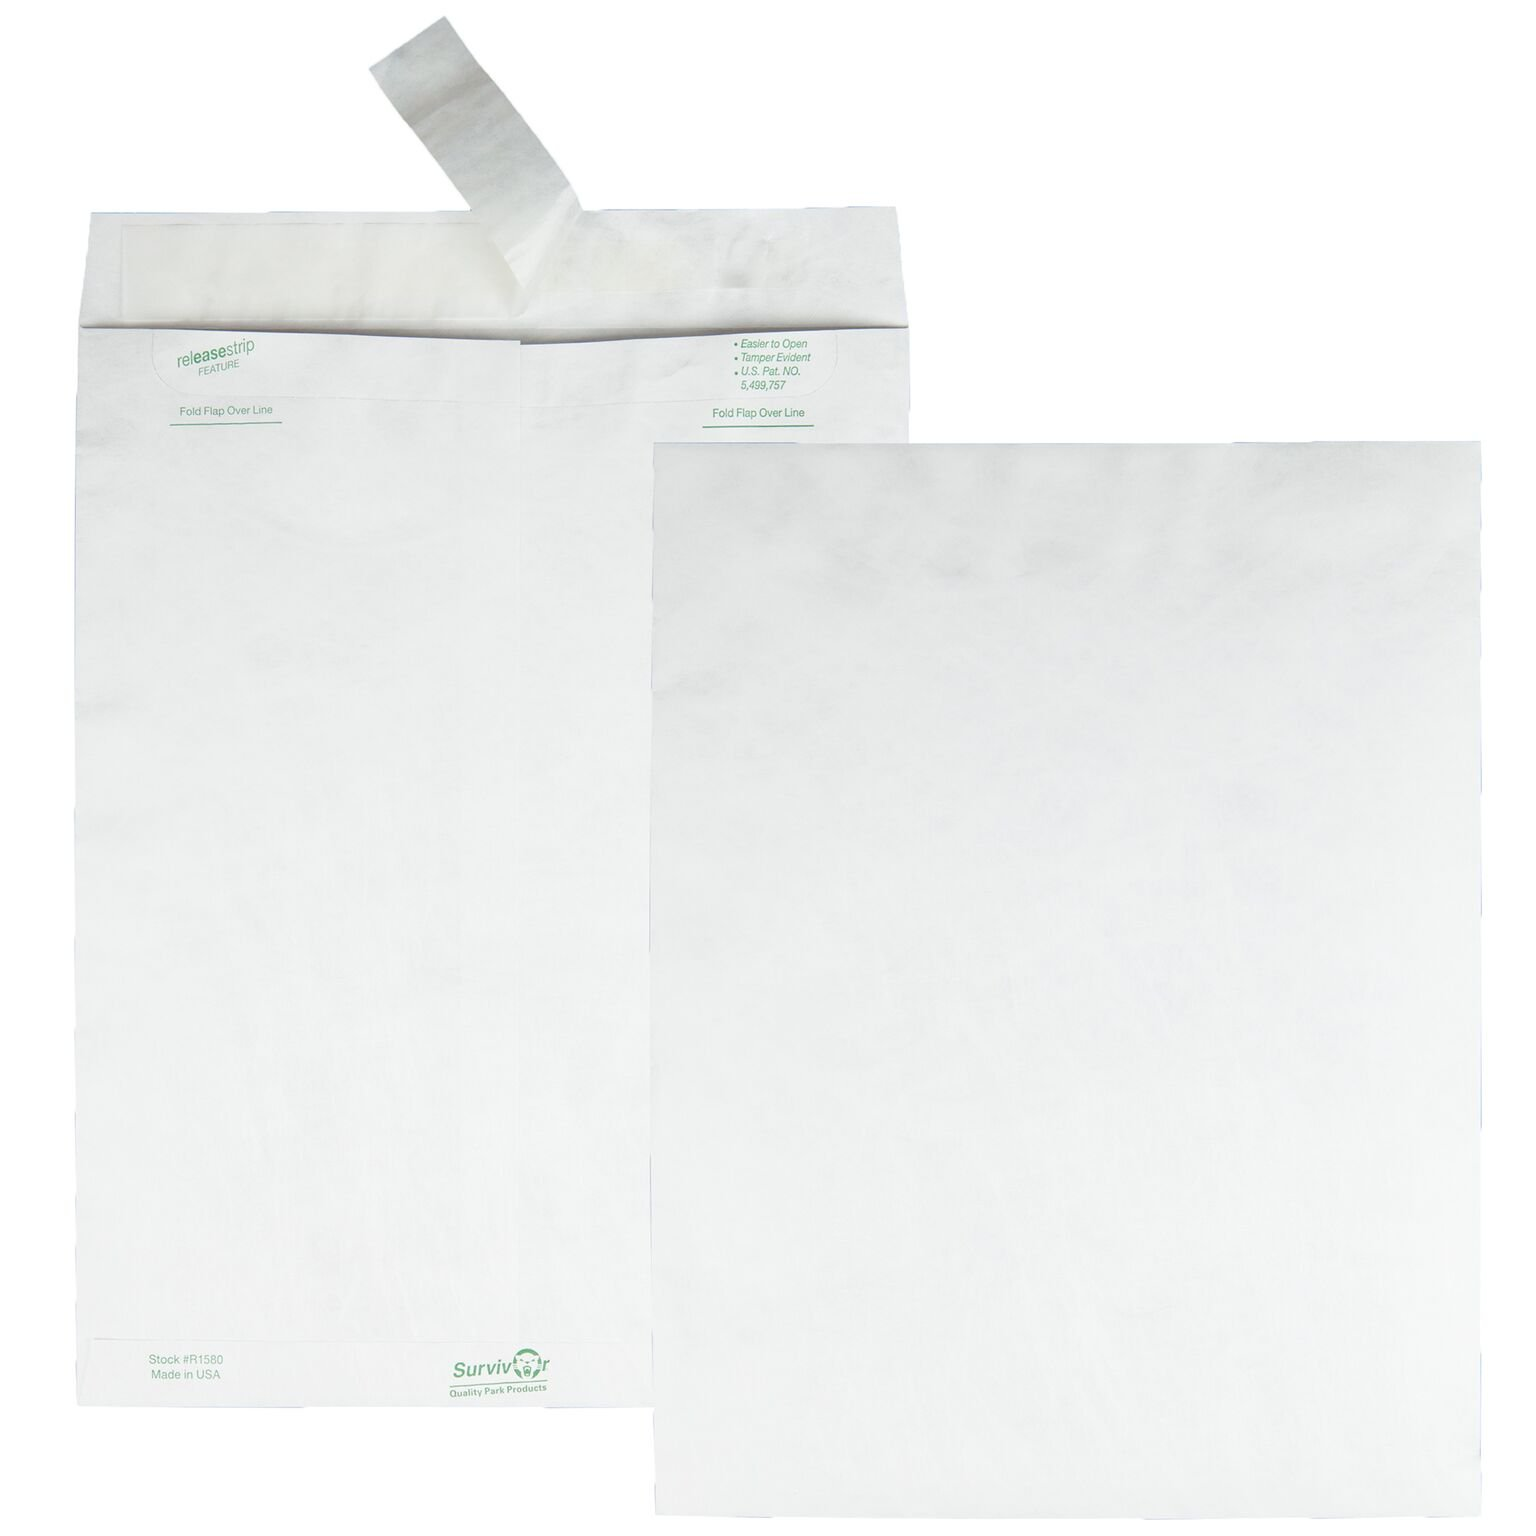 Quality Park TYVEK and Tear-Resistant Envelopes, 10 x 13 inches (R1582)